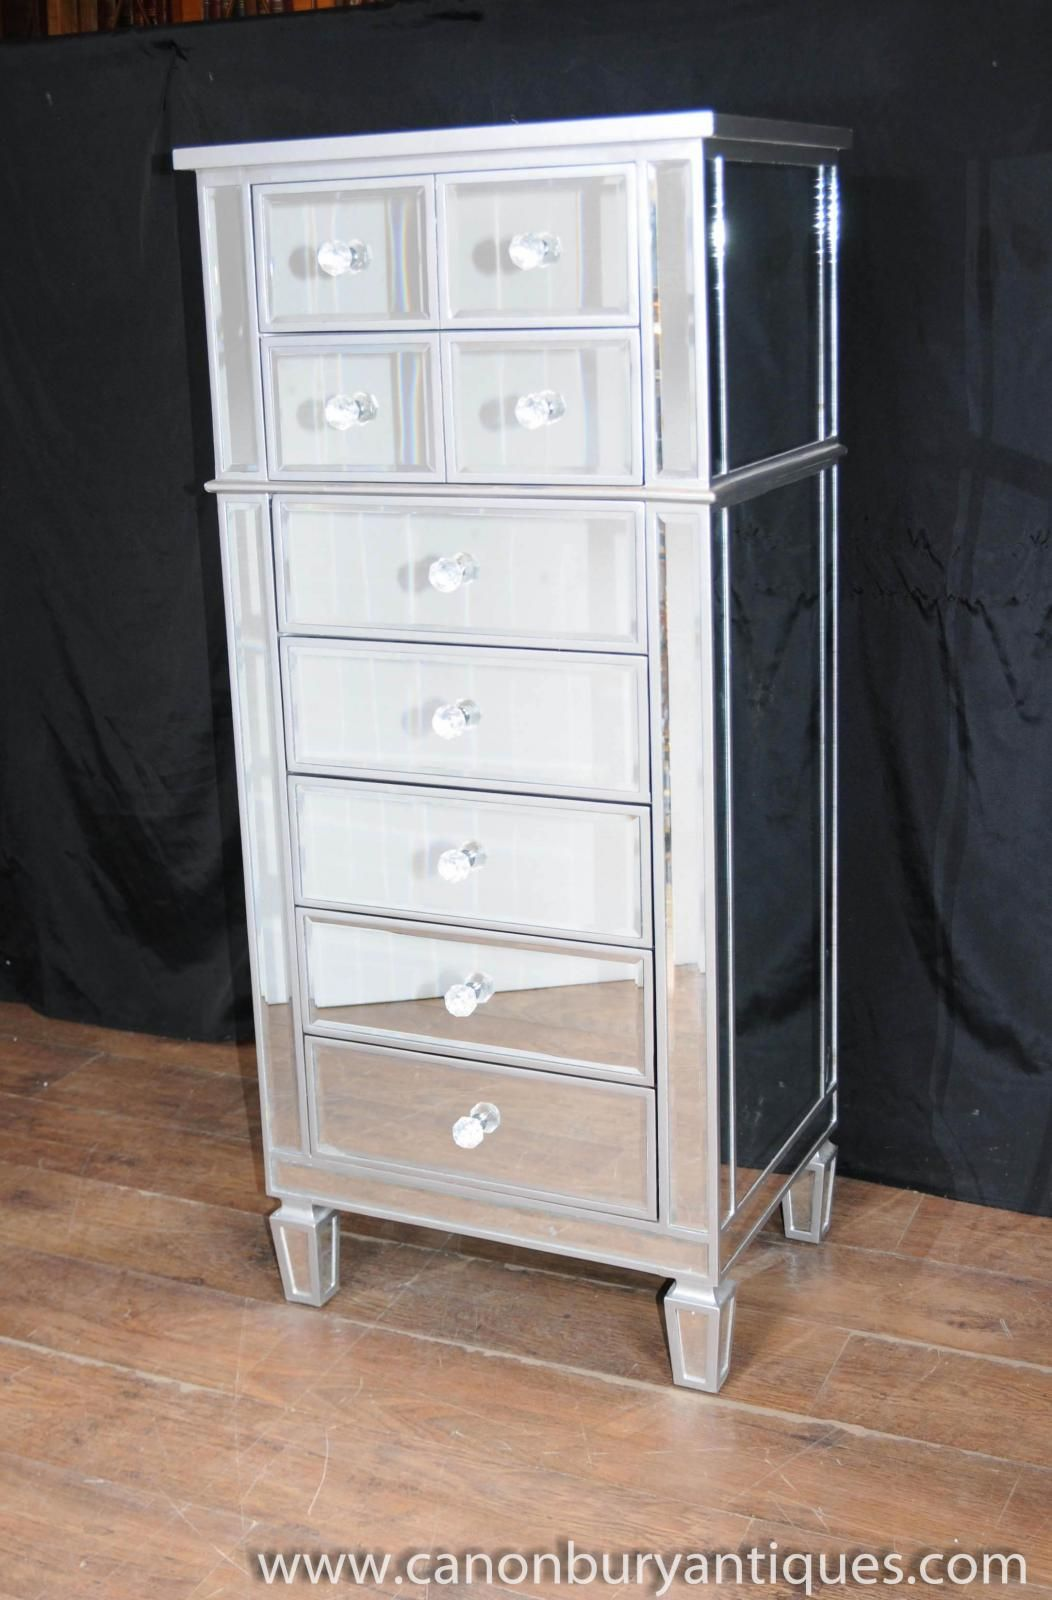 Photo of Art Deco Mirror Chest Drawers Tall Boy Mirrored Furniture ...